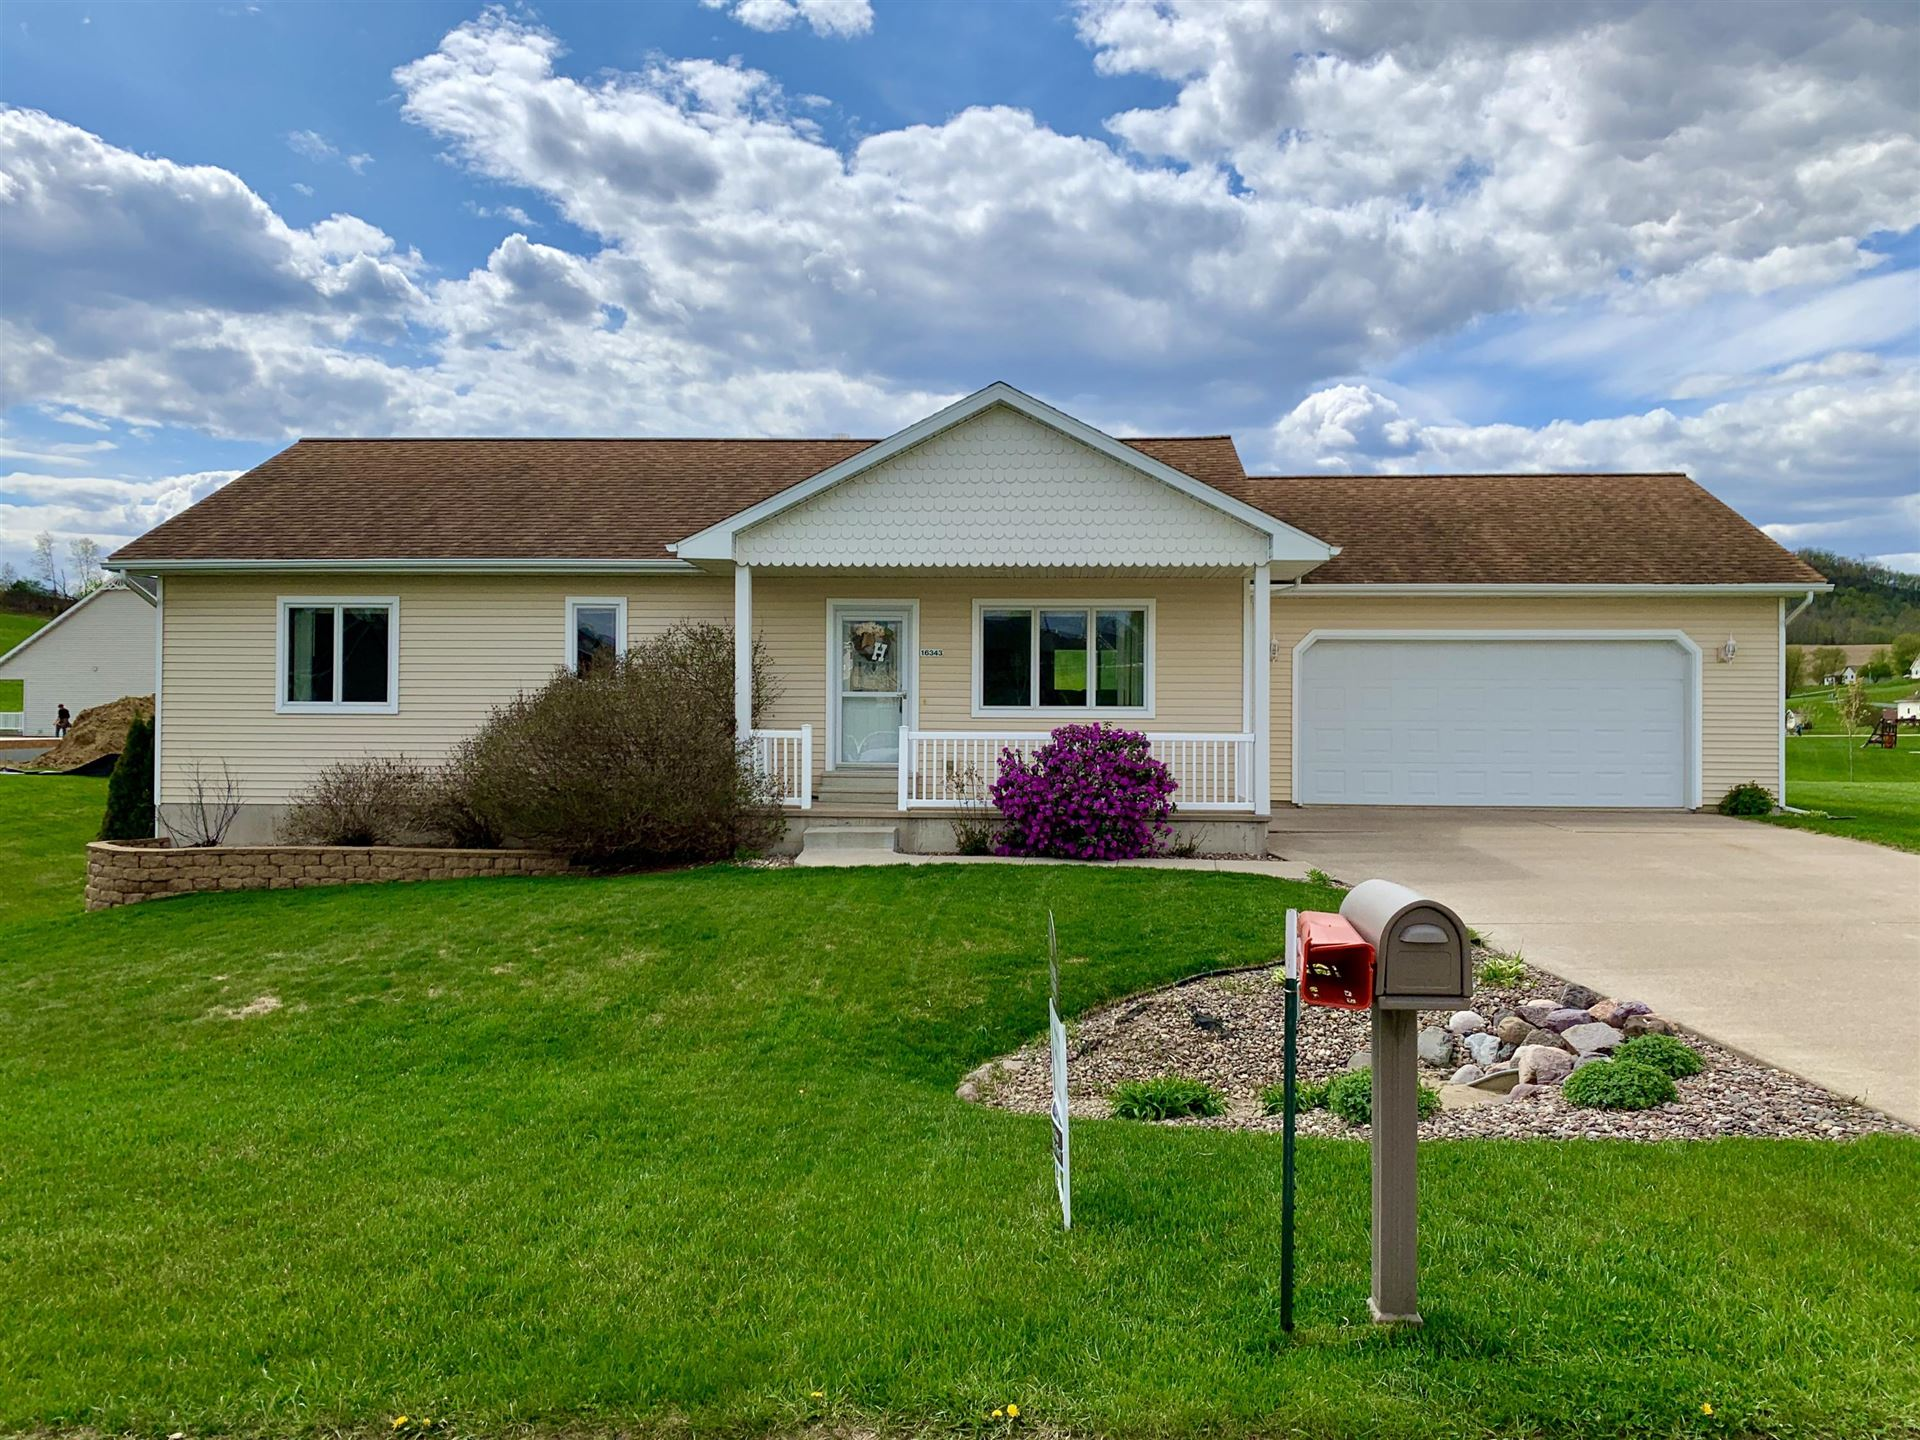 16343 Ridgeview Dr, Galesville, WI 54630 - MLS#: 1675185